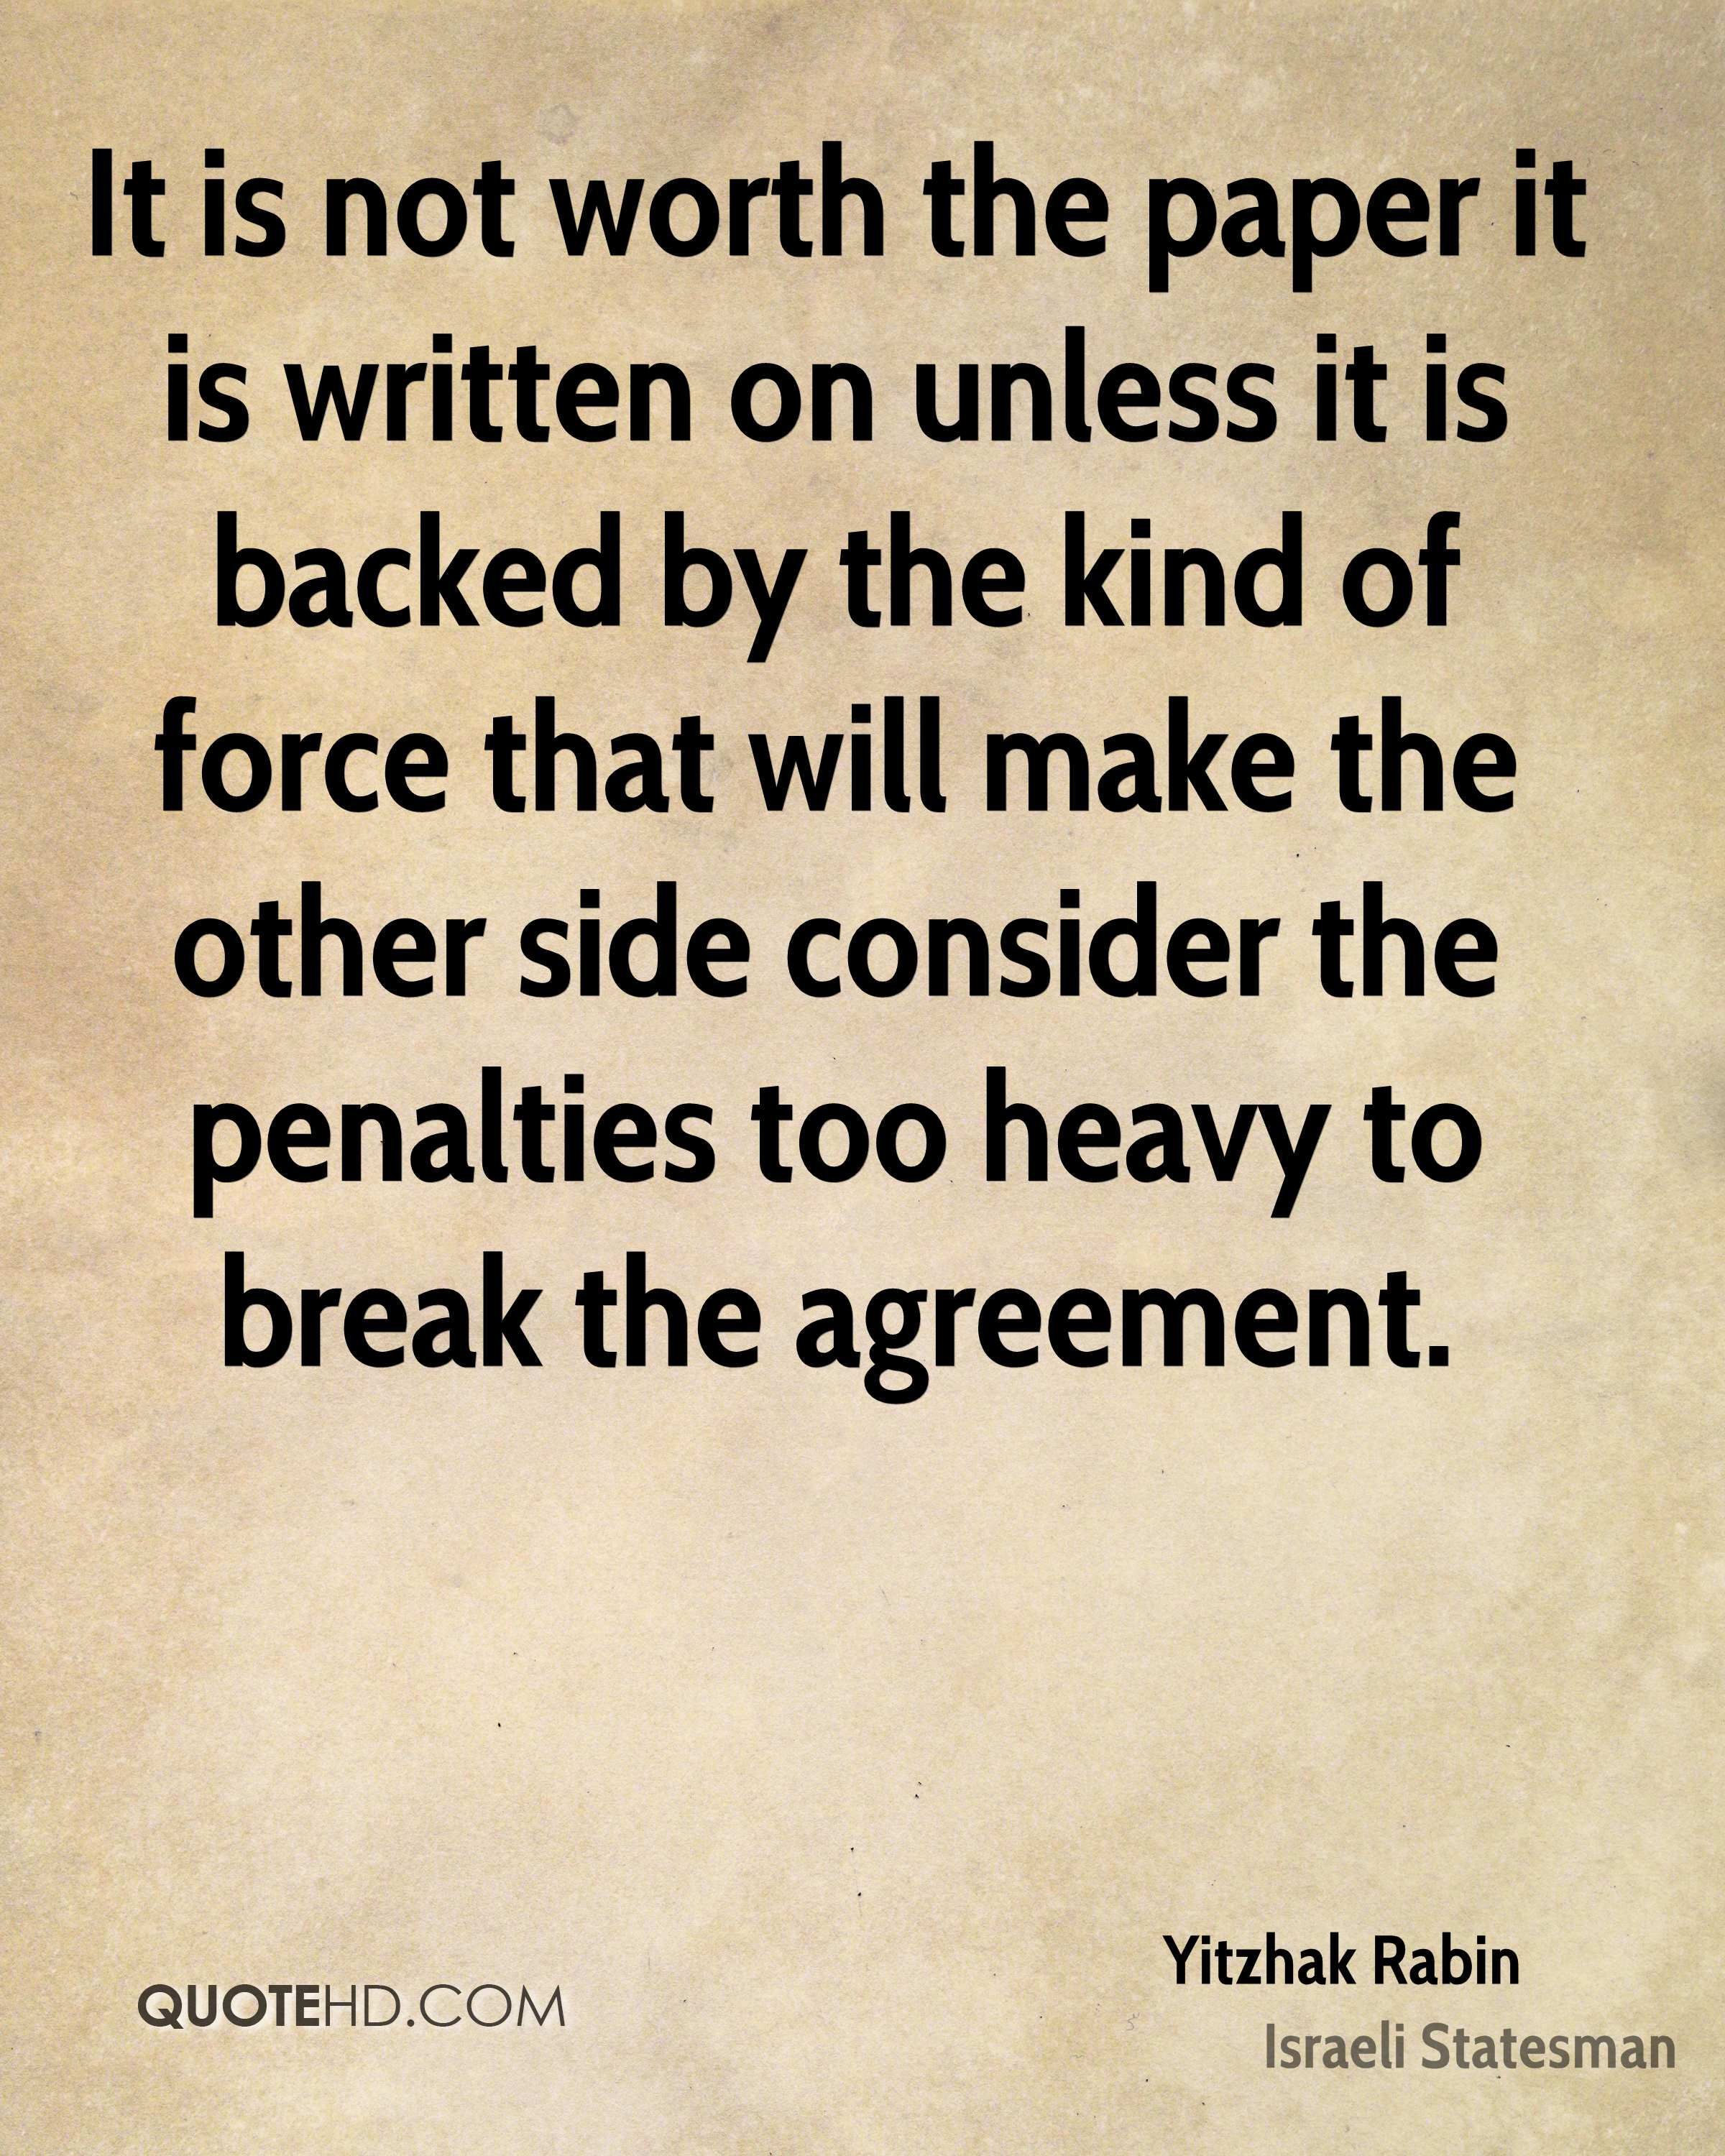 It is not worth the paper it is written on unless it is backed by the kind of force that will make the other side consider the penalties too heavy to break the agreement.